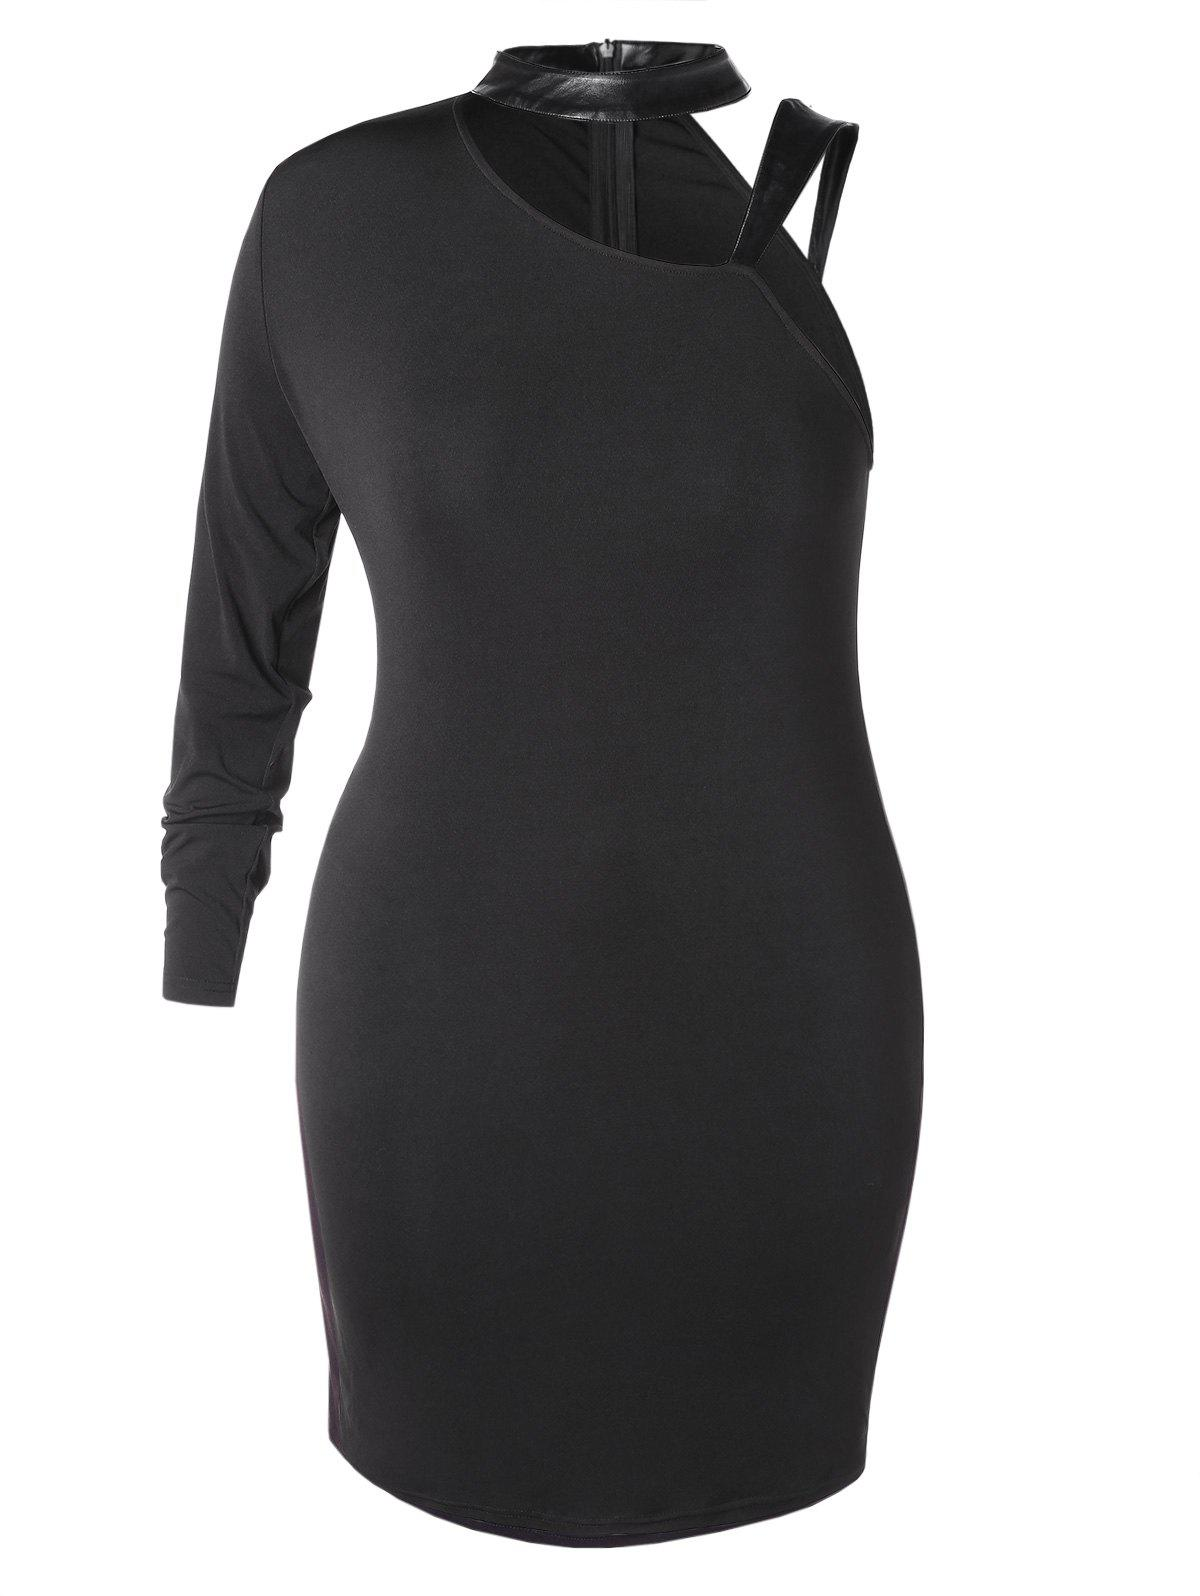 Plus Size Choker Cut Out Bodycon Dress - BLACK 5X